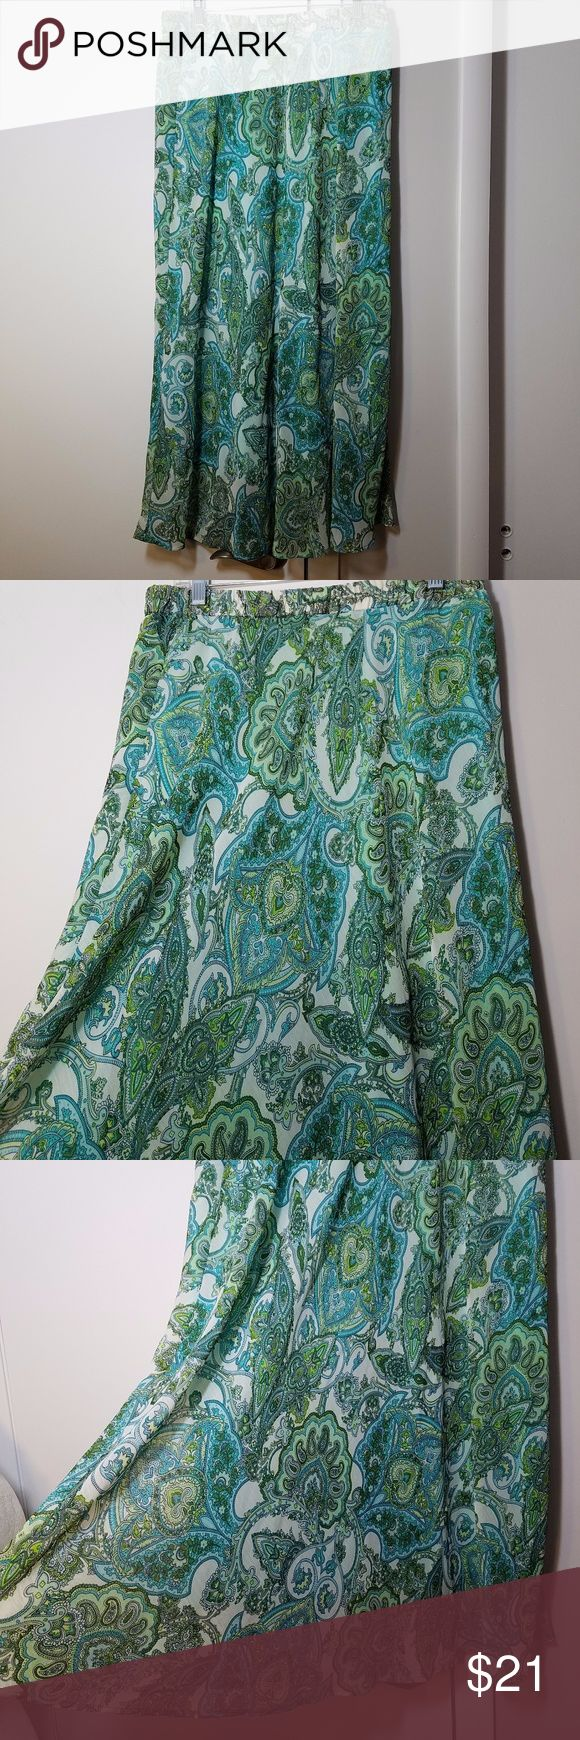 Roz & Ali Paisley Gypsy Maxi Skirt Excellent condition. Like new! I never got around to wearing this skirt. Features blue & green paisley patterns throughout. The waistband is very stretchy, the skirt is quite flowy and light with a solid turquoise liner layer underneath. Approximate measurements are in the picture. 100% polyester. Roz & Ali Skirts Maxi